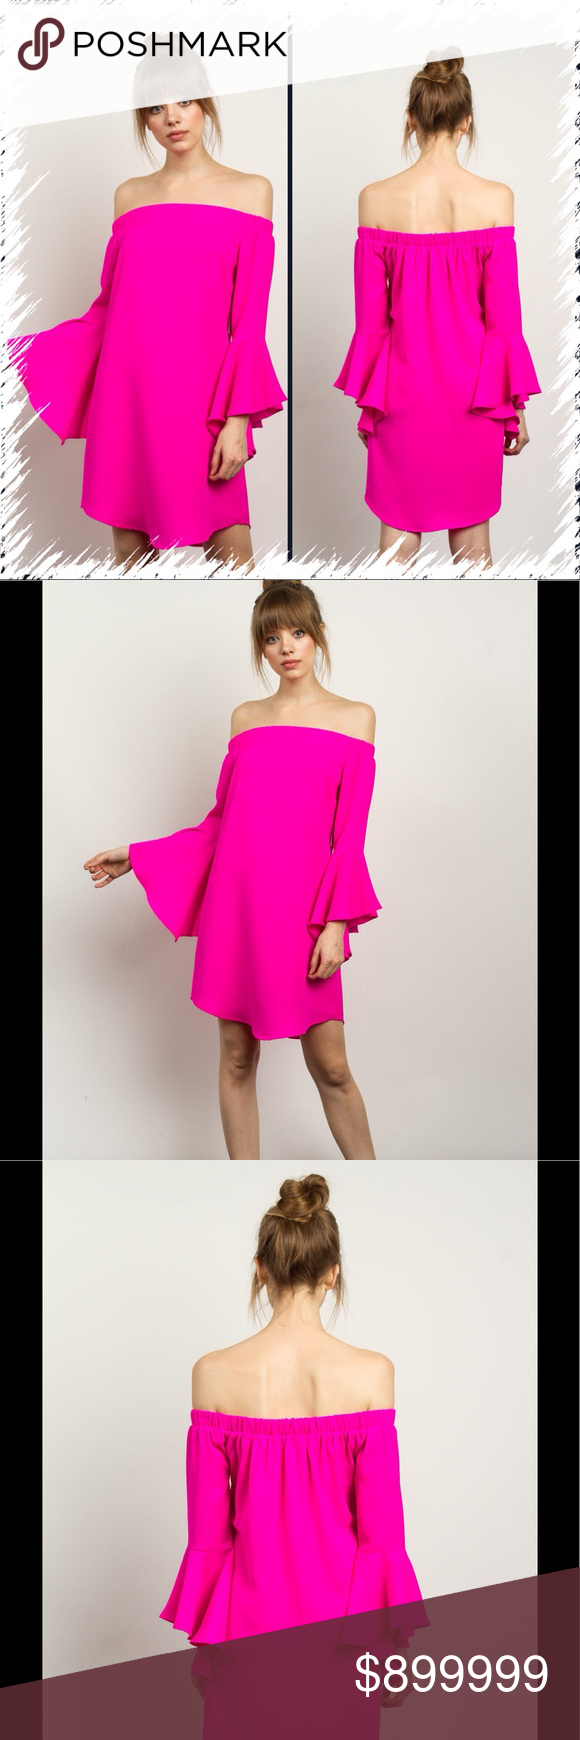 HOT PINK OFF THE SHOULDER DRESS, Size Small